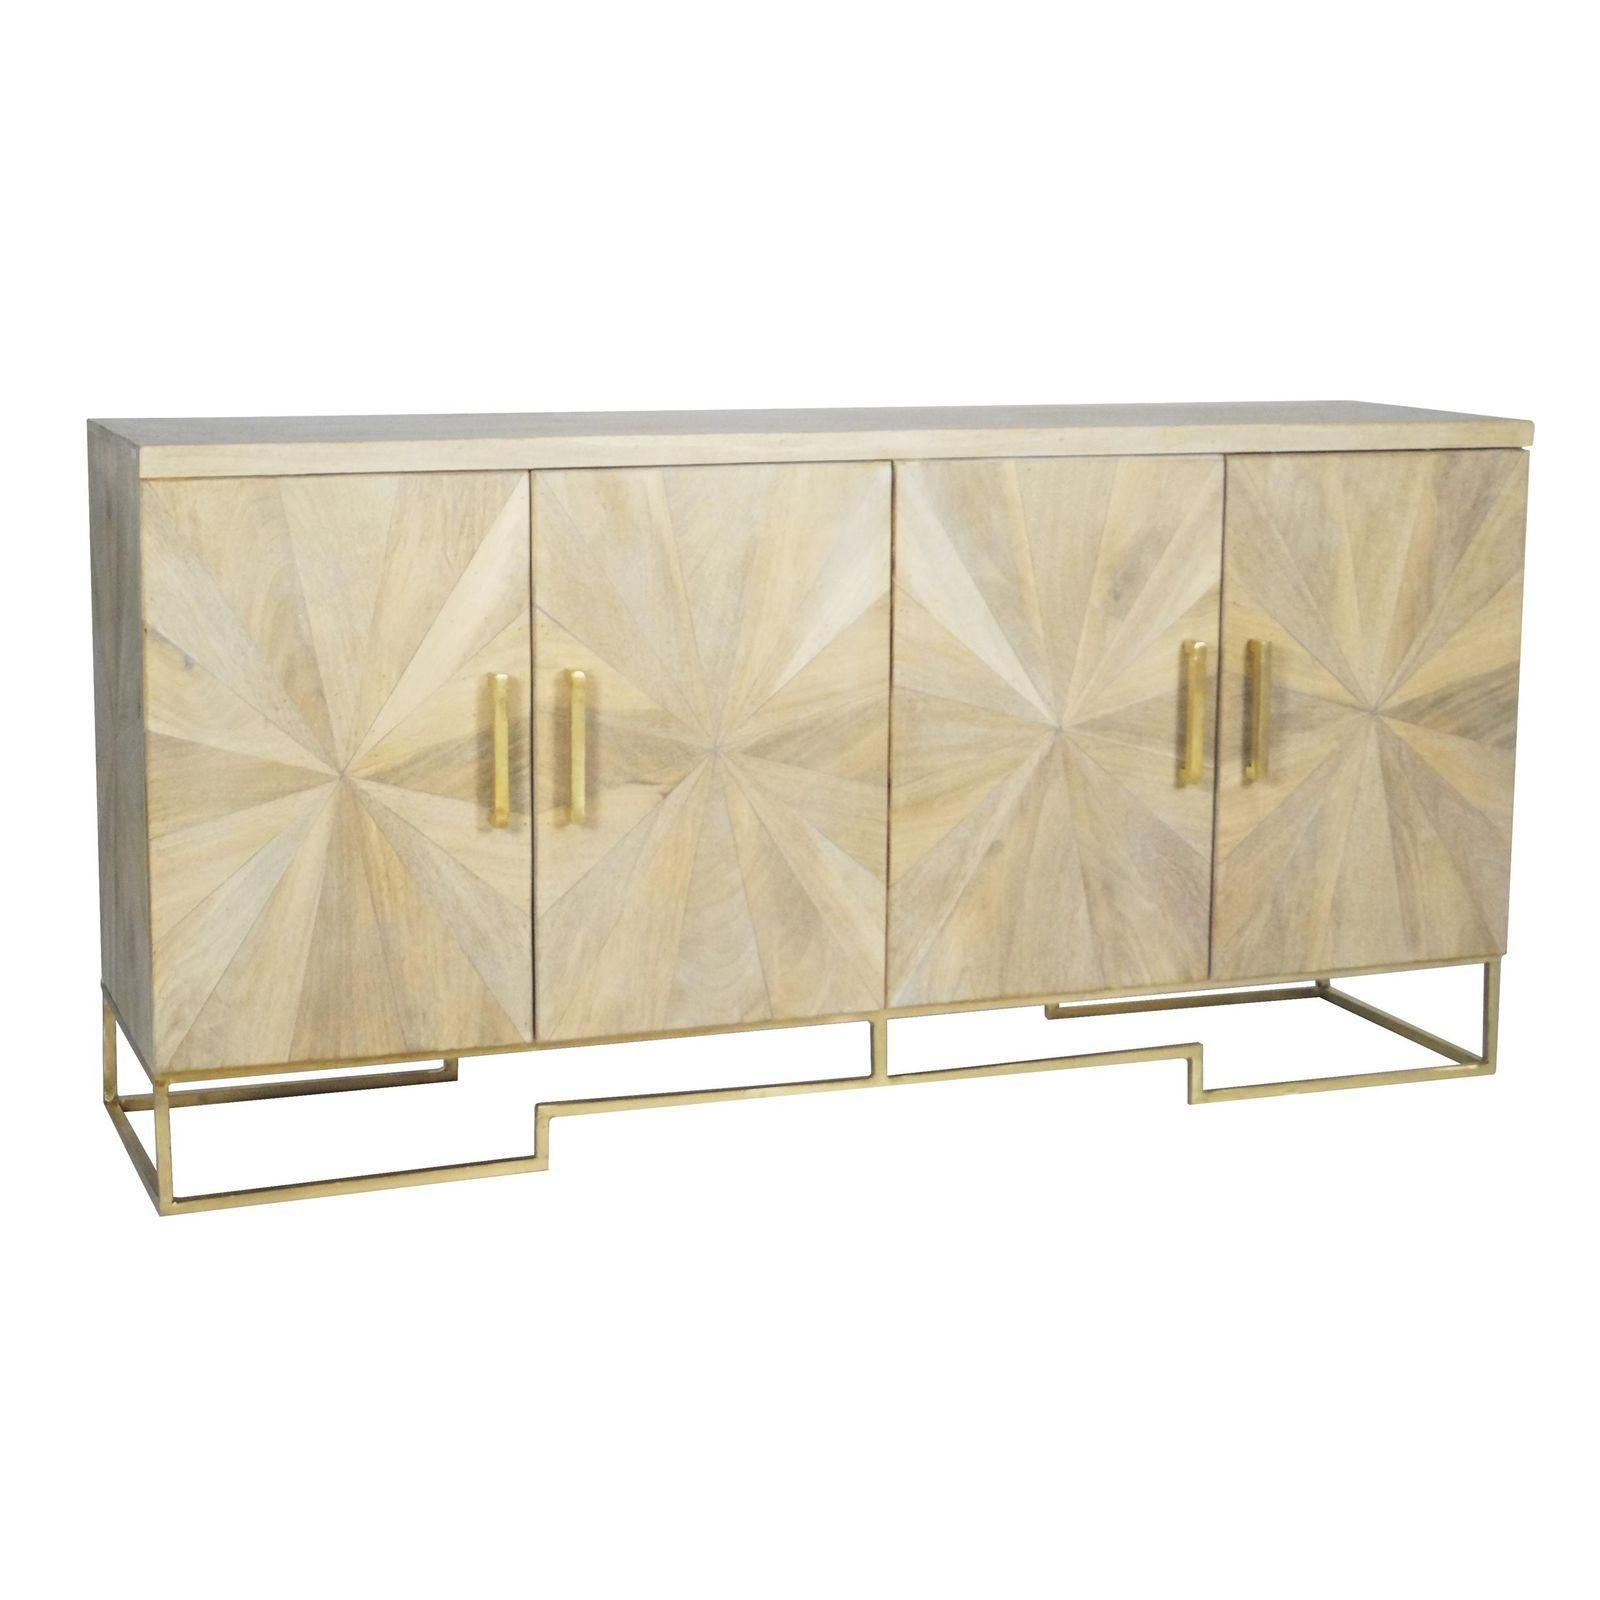 Selamat Designs Justinian Starburst Credenza | Project: Financial intended for Starburst 3 Door Sideboards (Image 22 of 30)